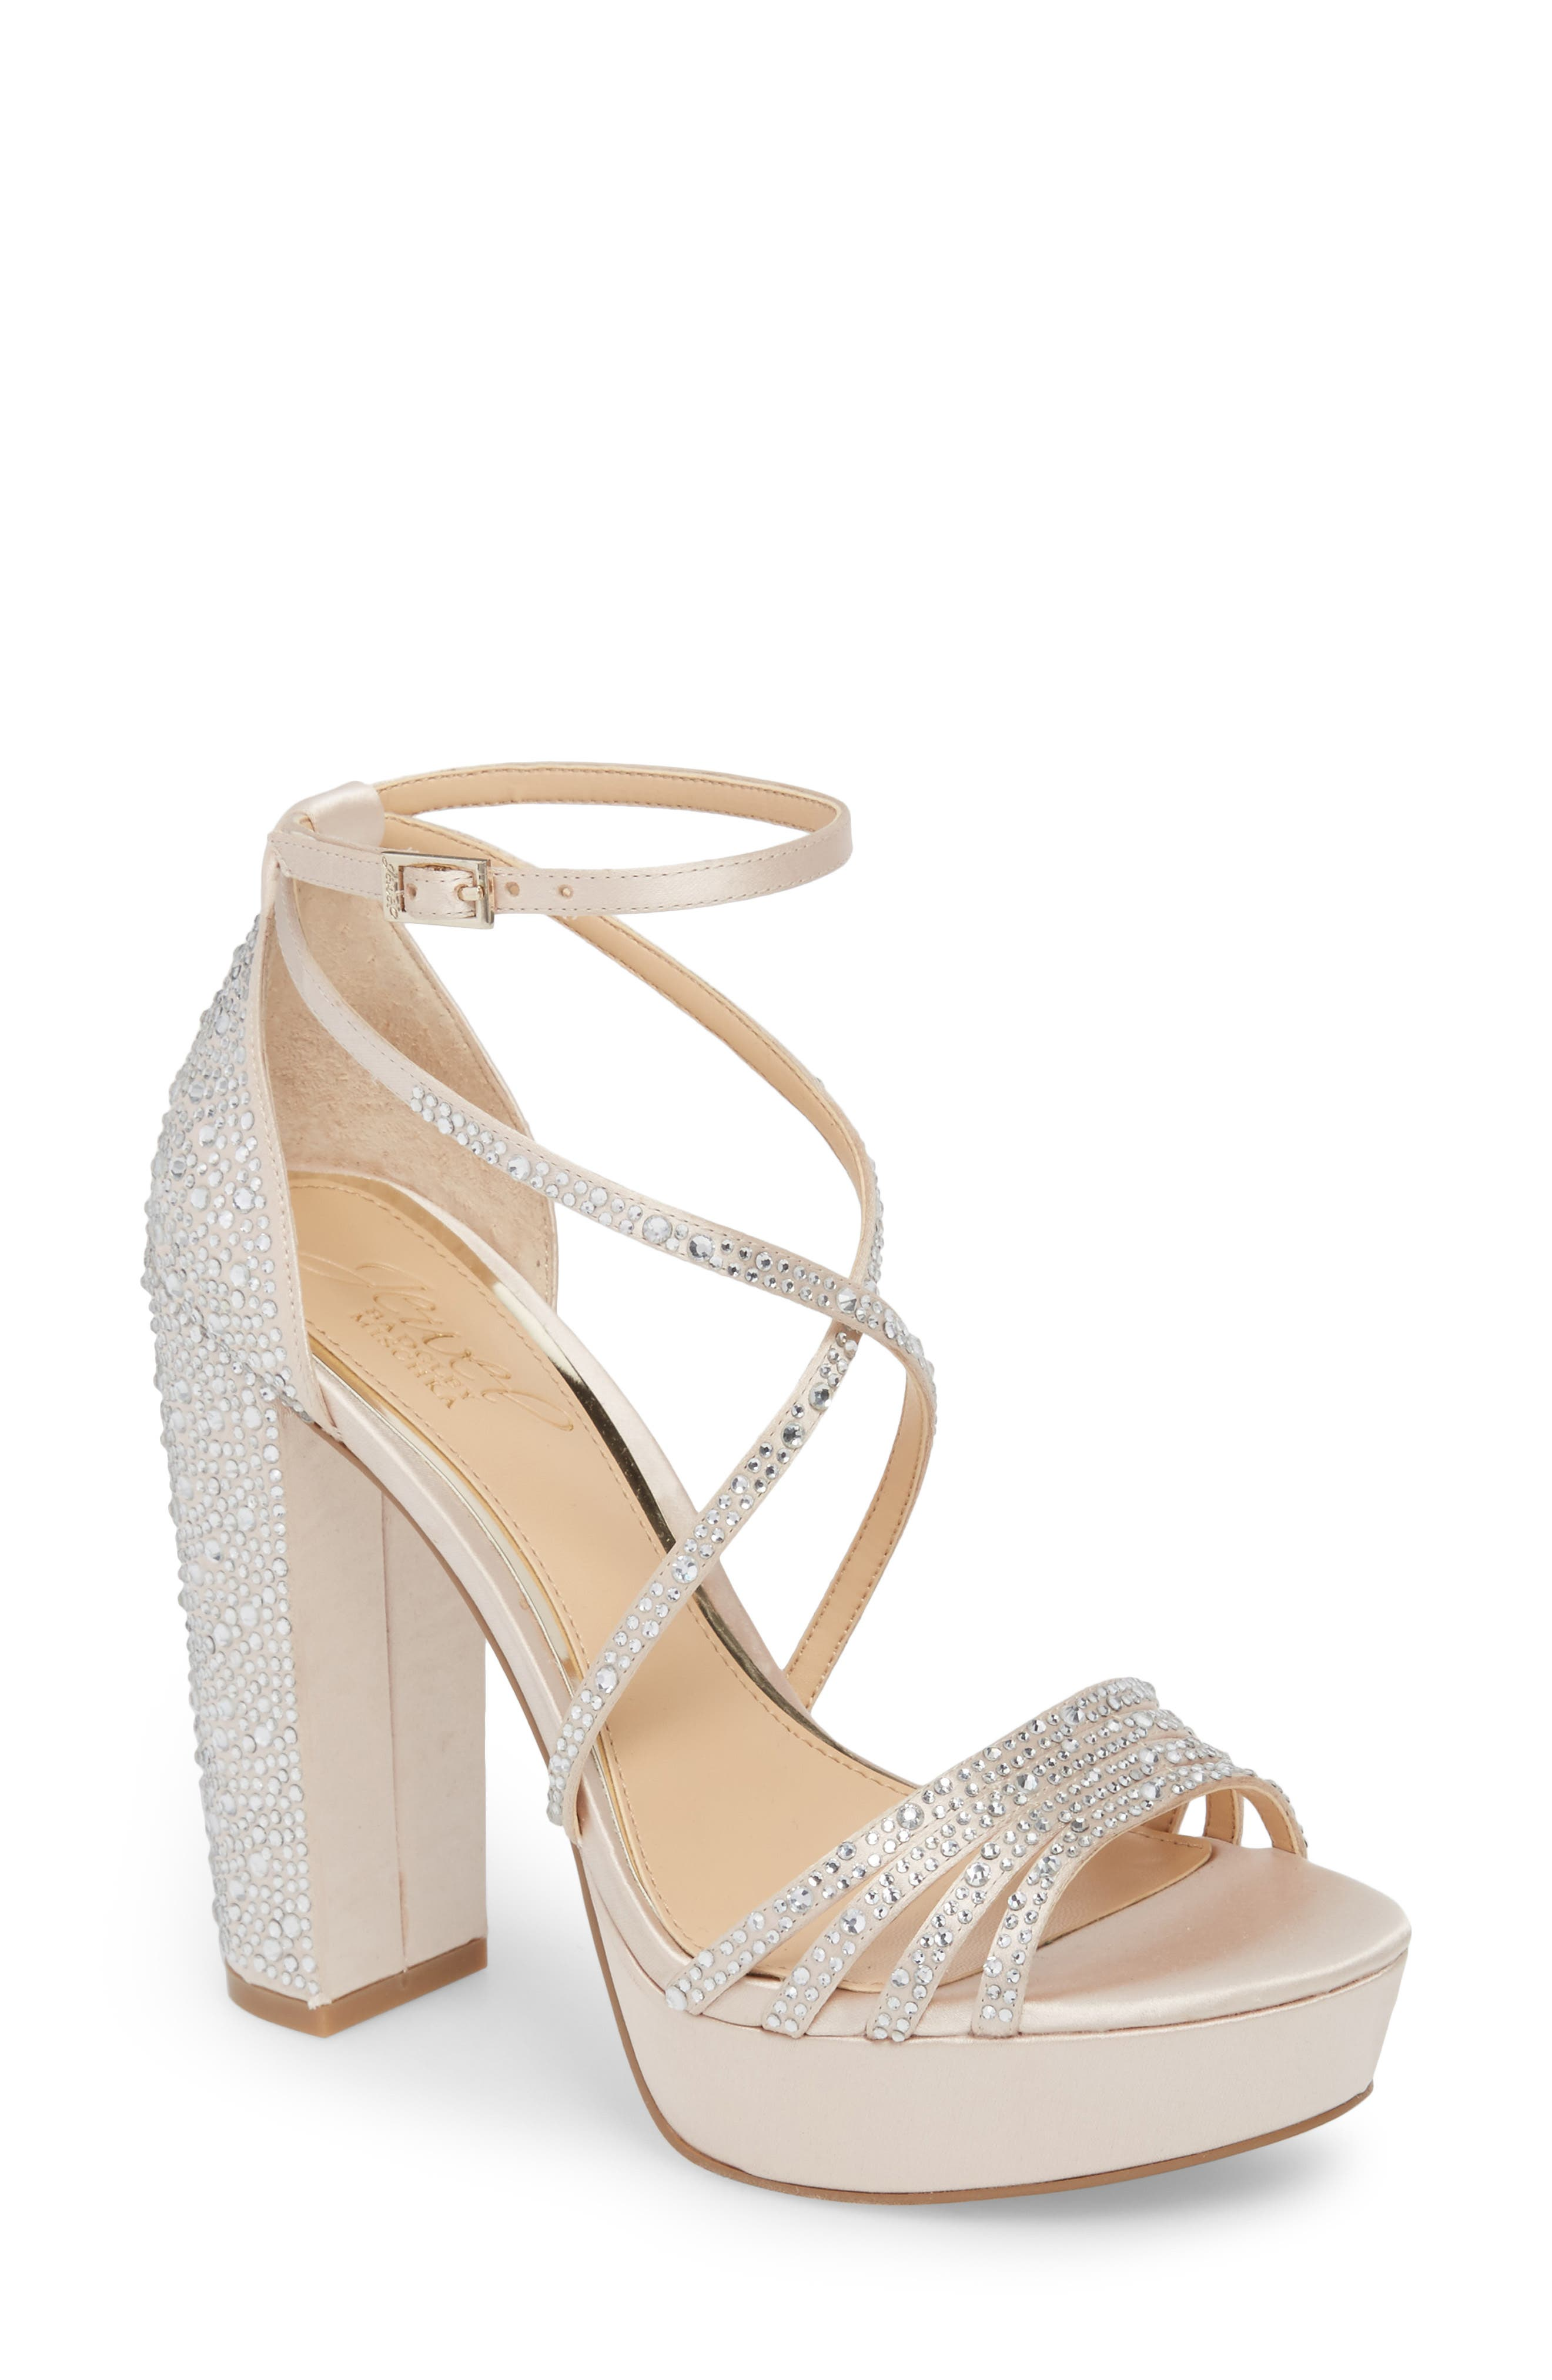 Tarah Crystal Embellished Platform Sandal,                             Main thumbnail 3, color,